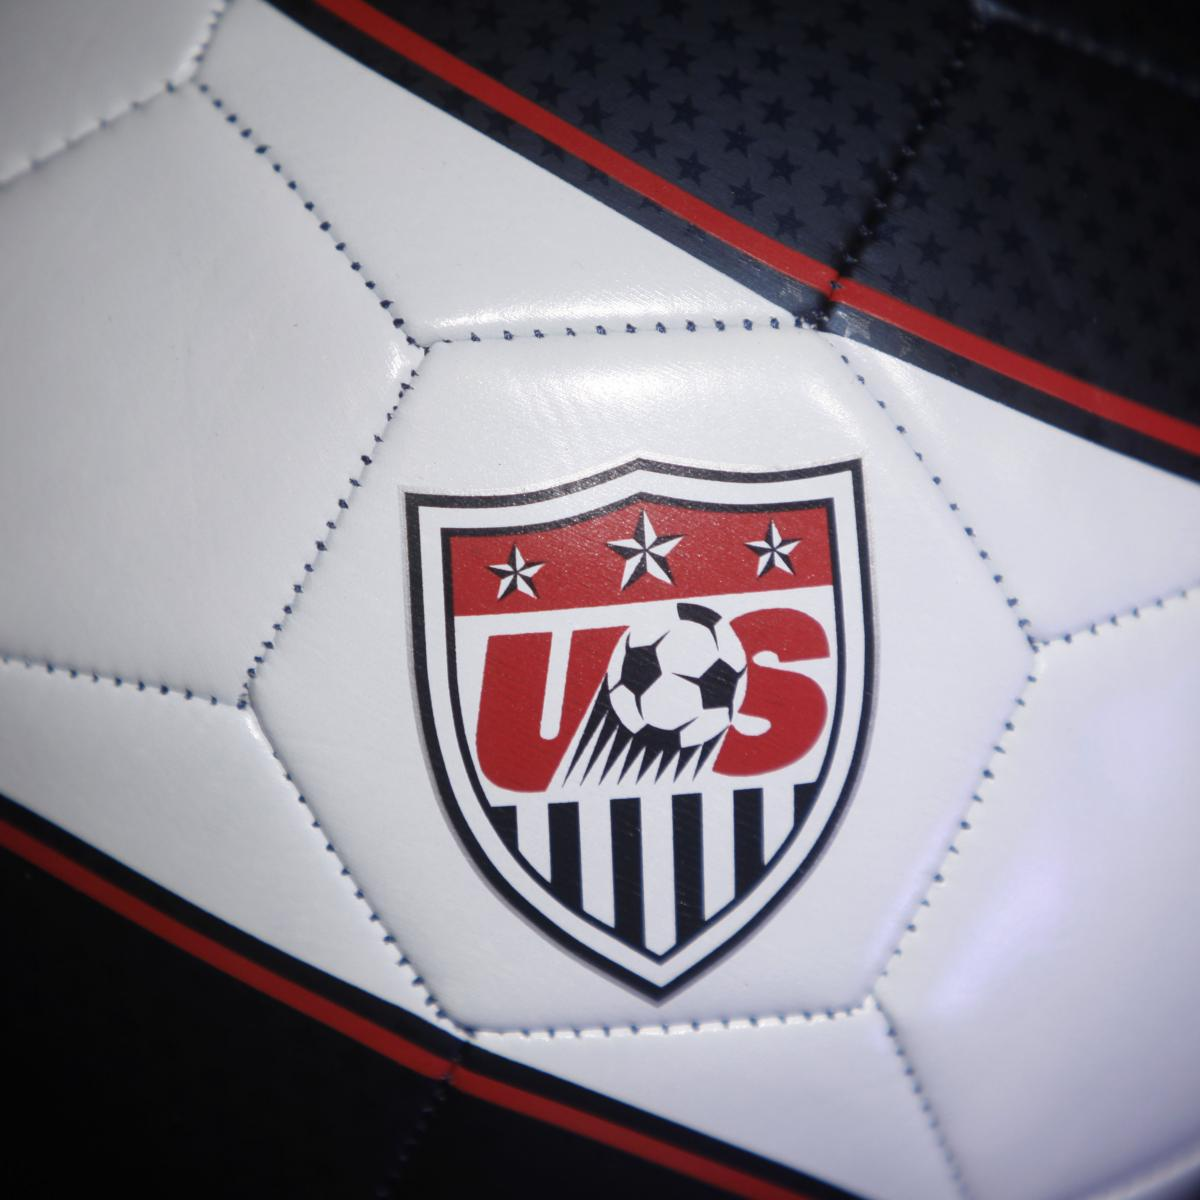 U.S. Soccer Foundation Sues U.S. Soccer After Being Asked to Change Name, Logo